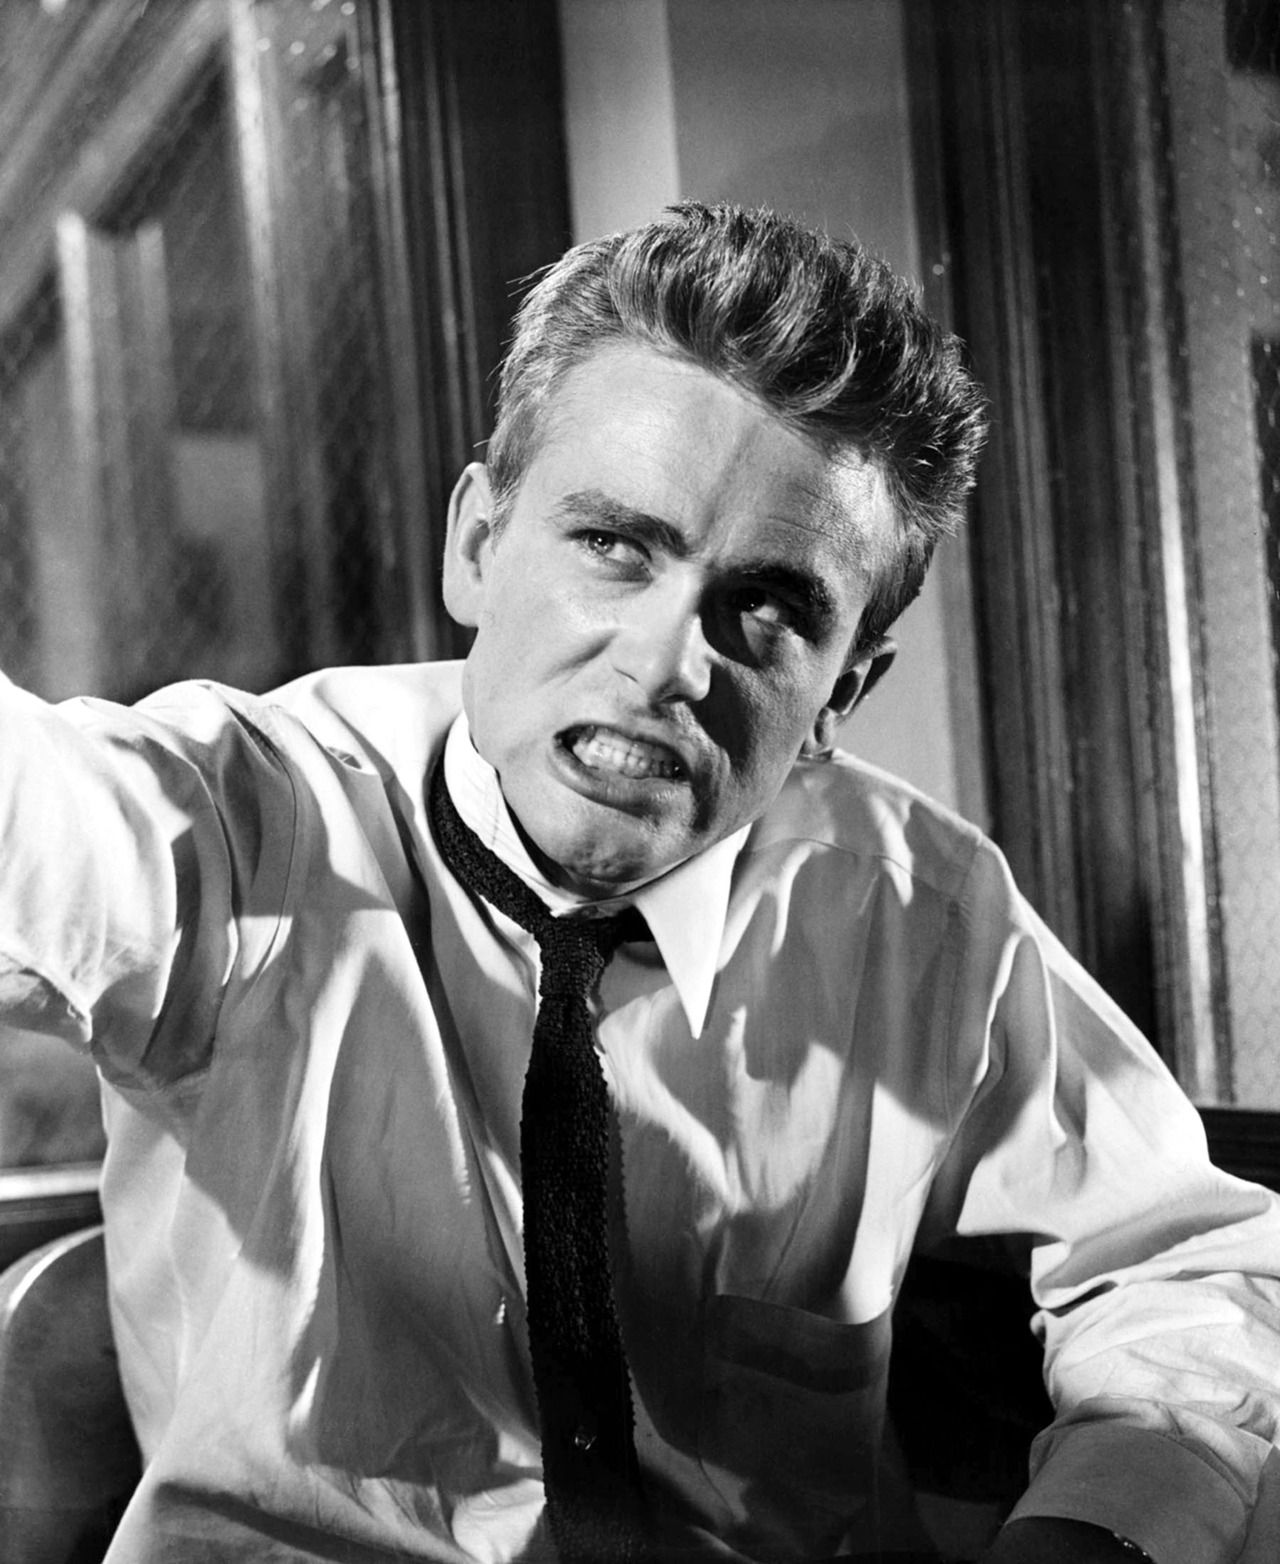 """Rebel Without a Cause - 1955 @Josiah Armstrong """"You're tearing me apart!"""""""